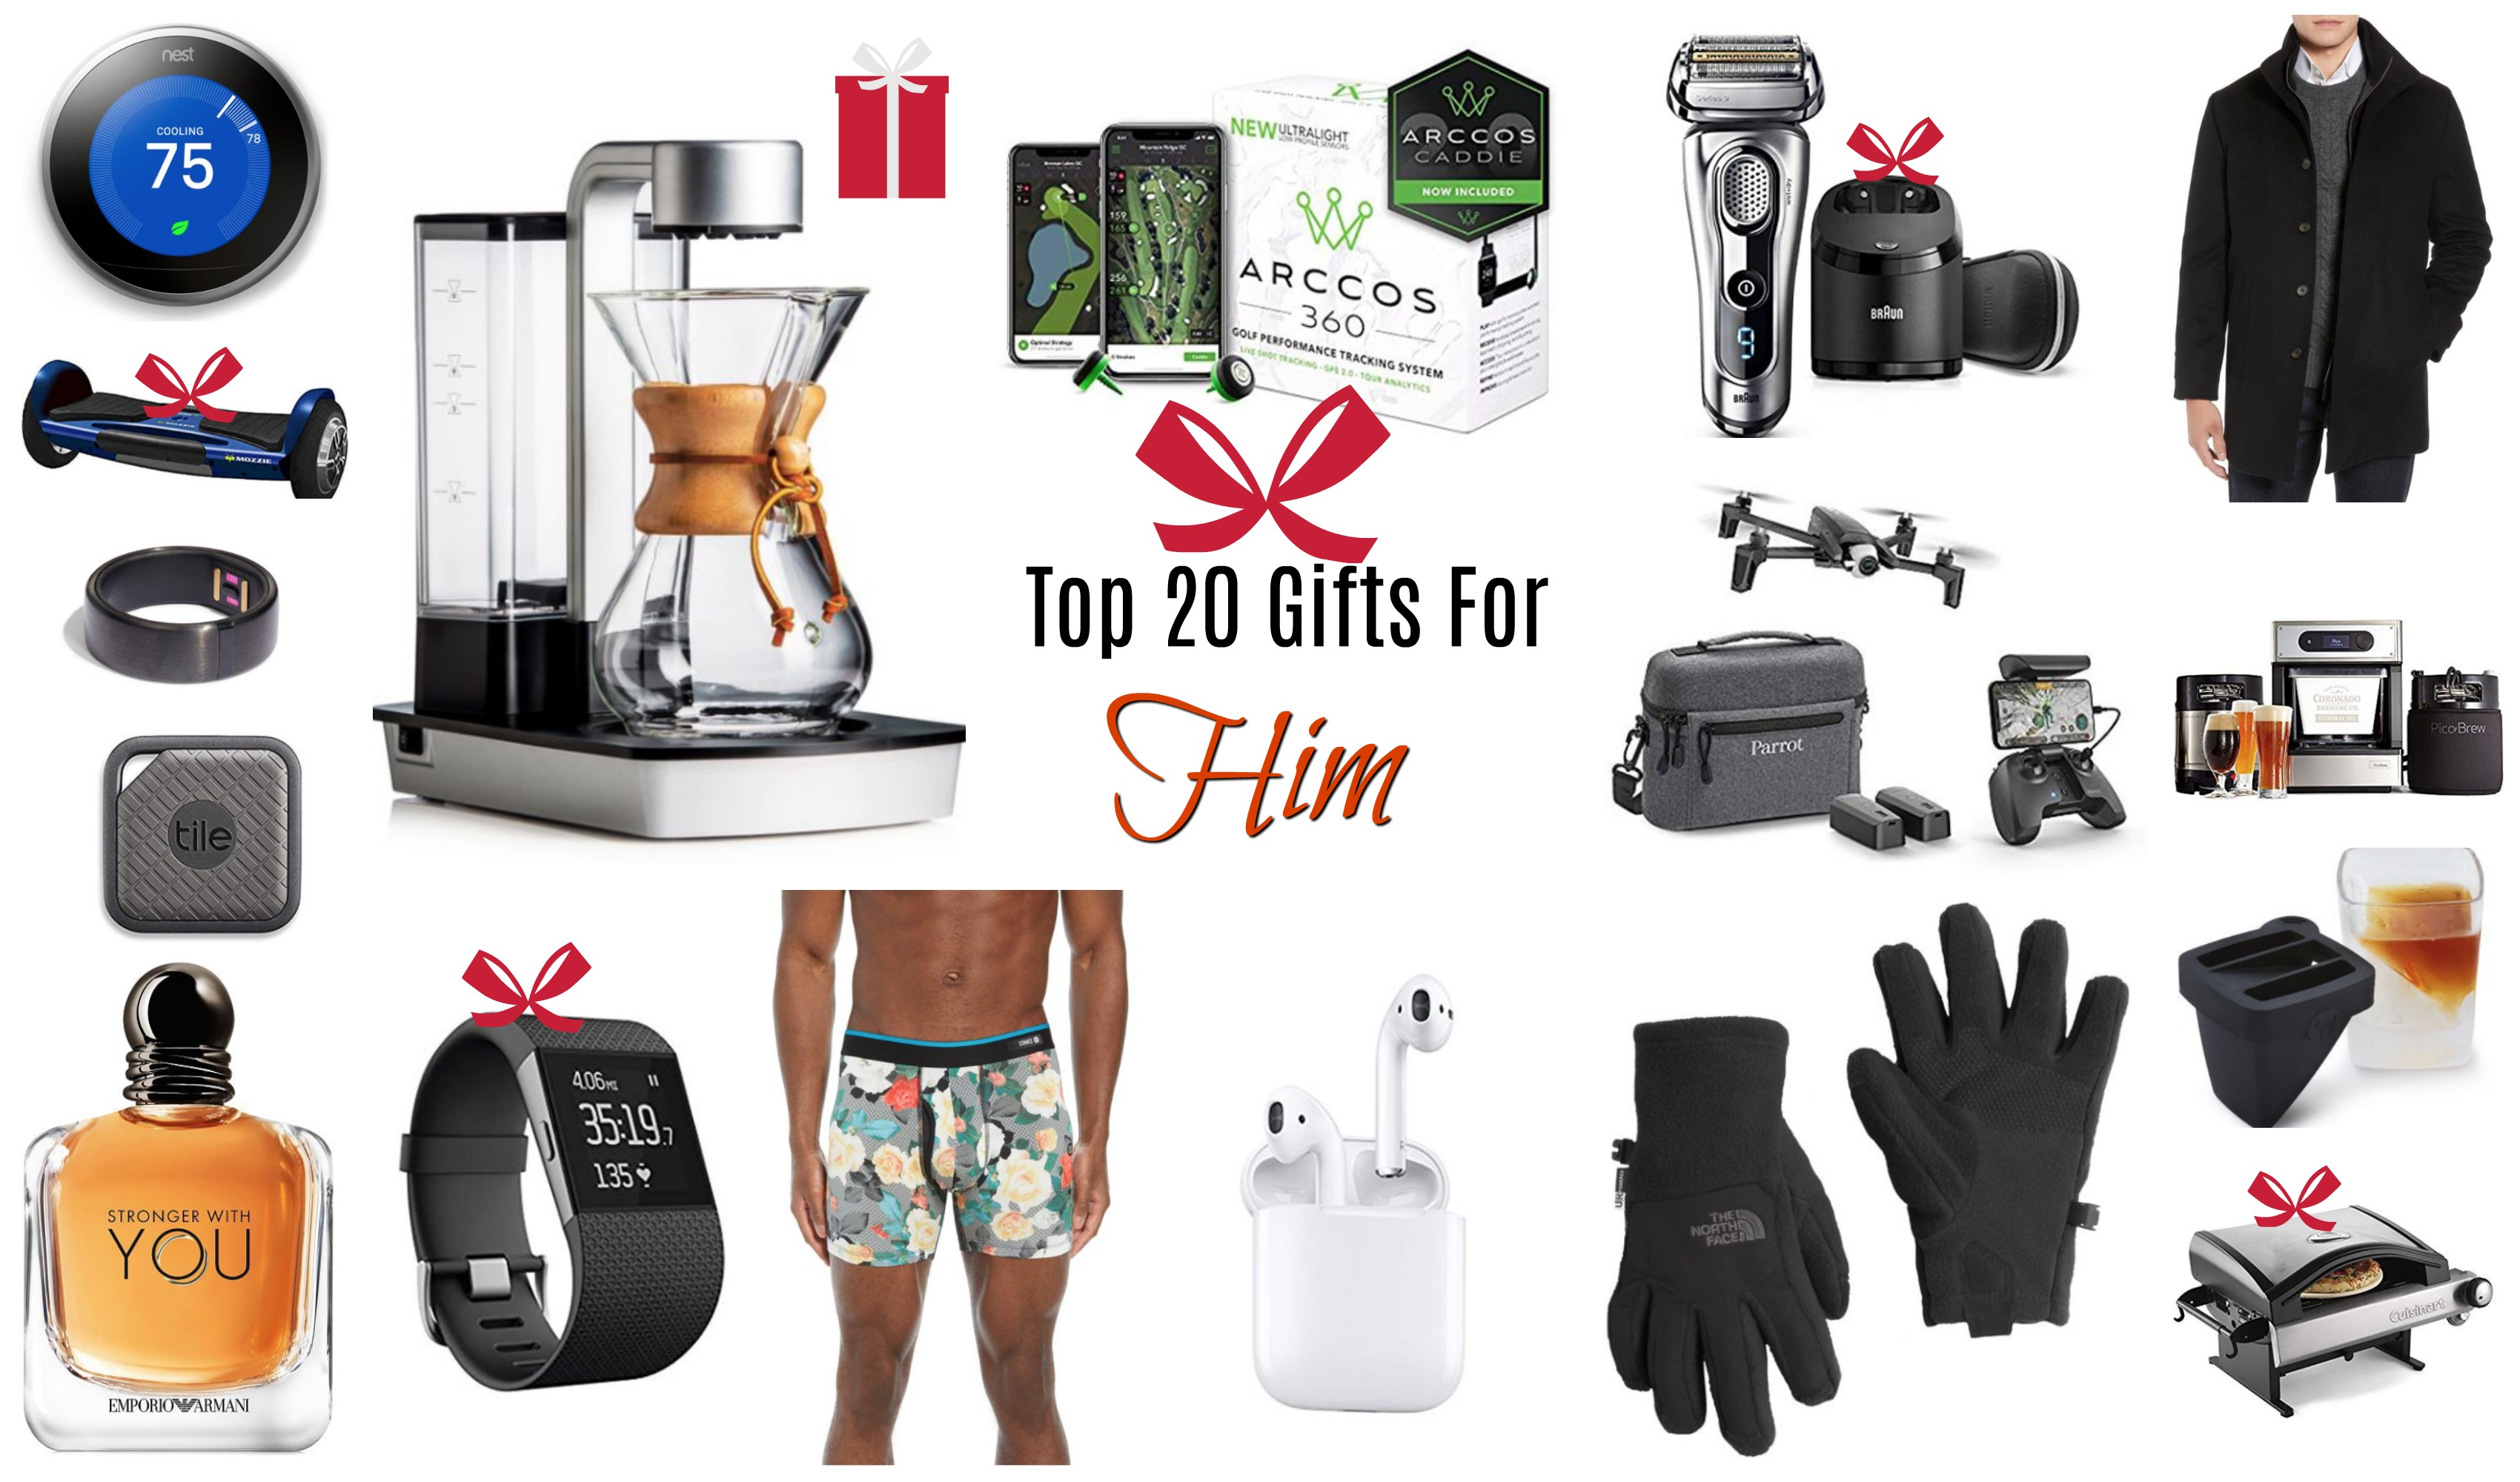 Top 20 Gifts For Him Paleomg